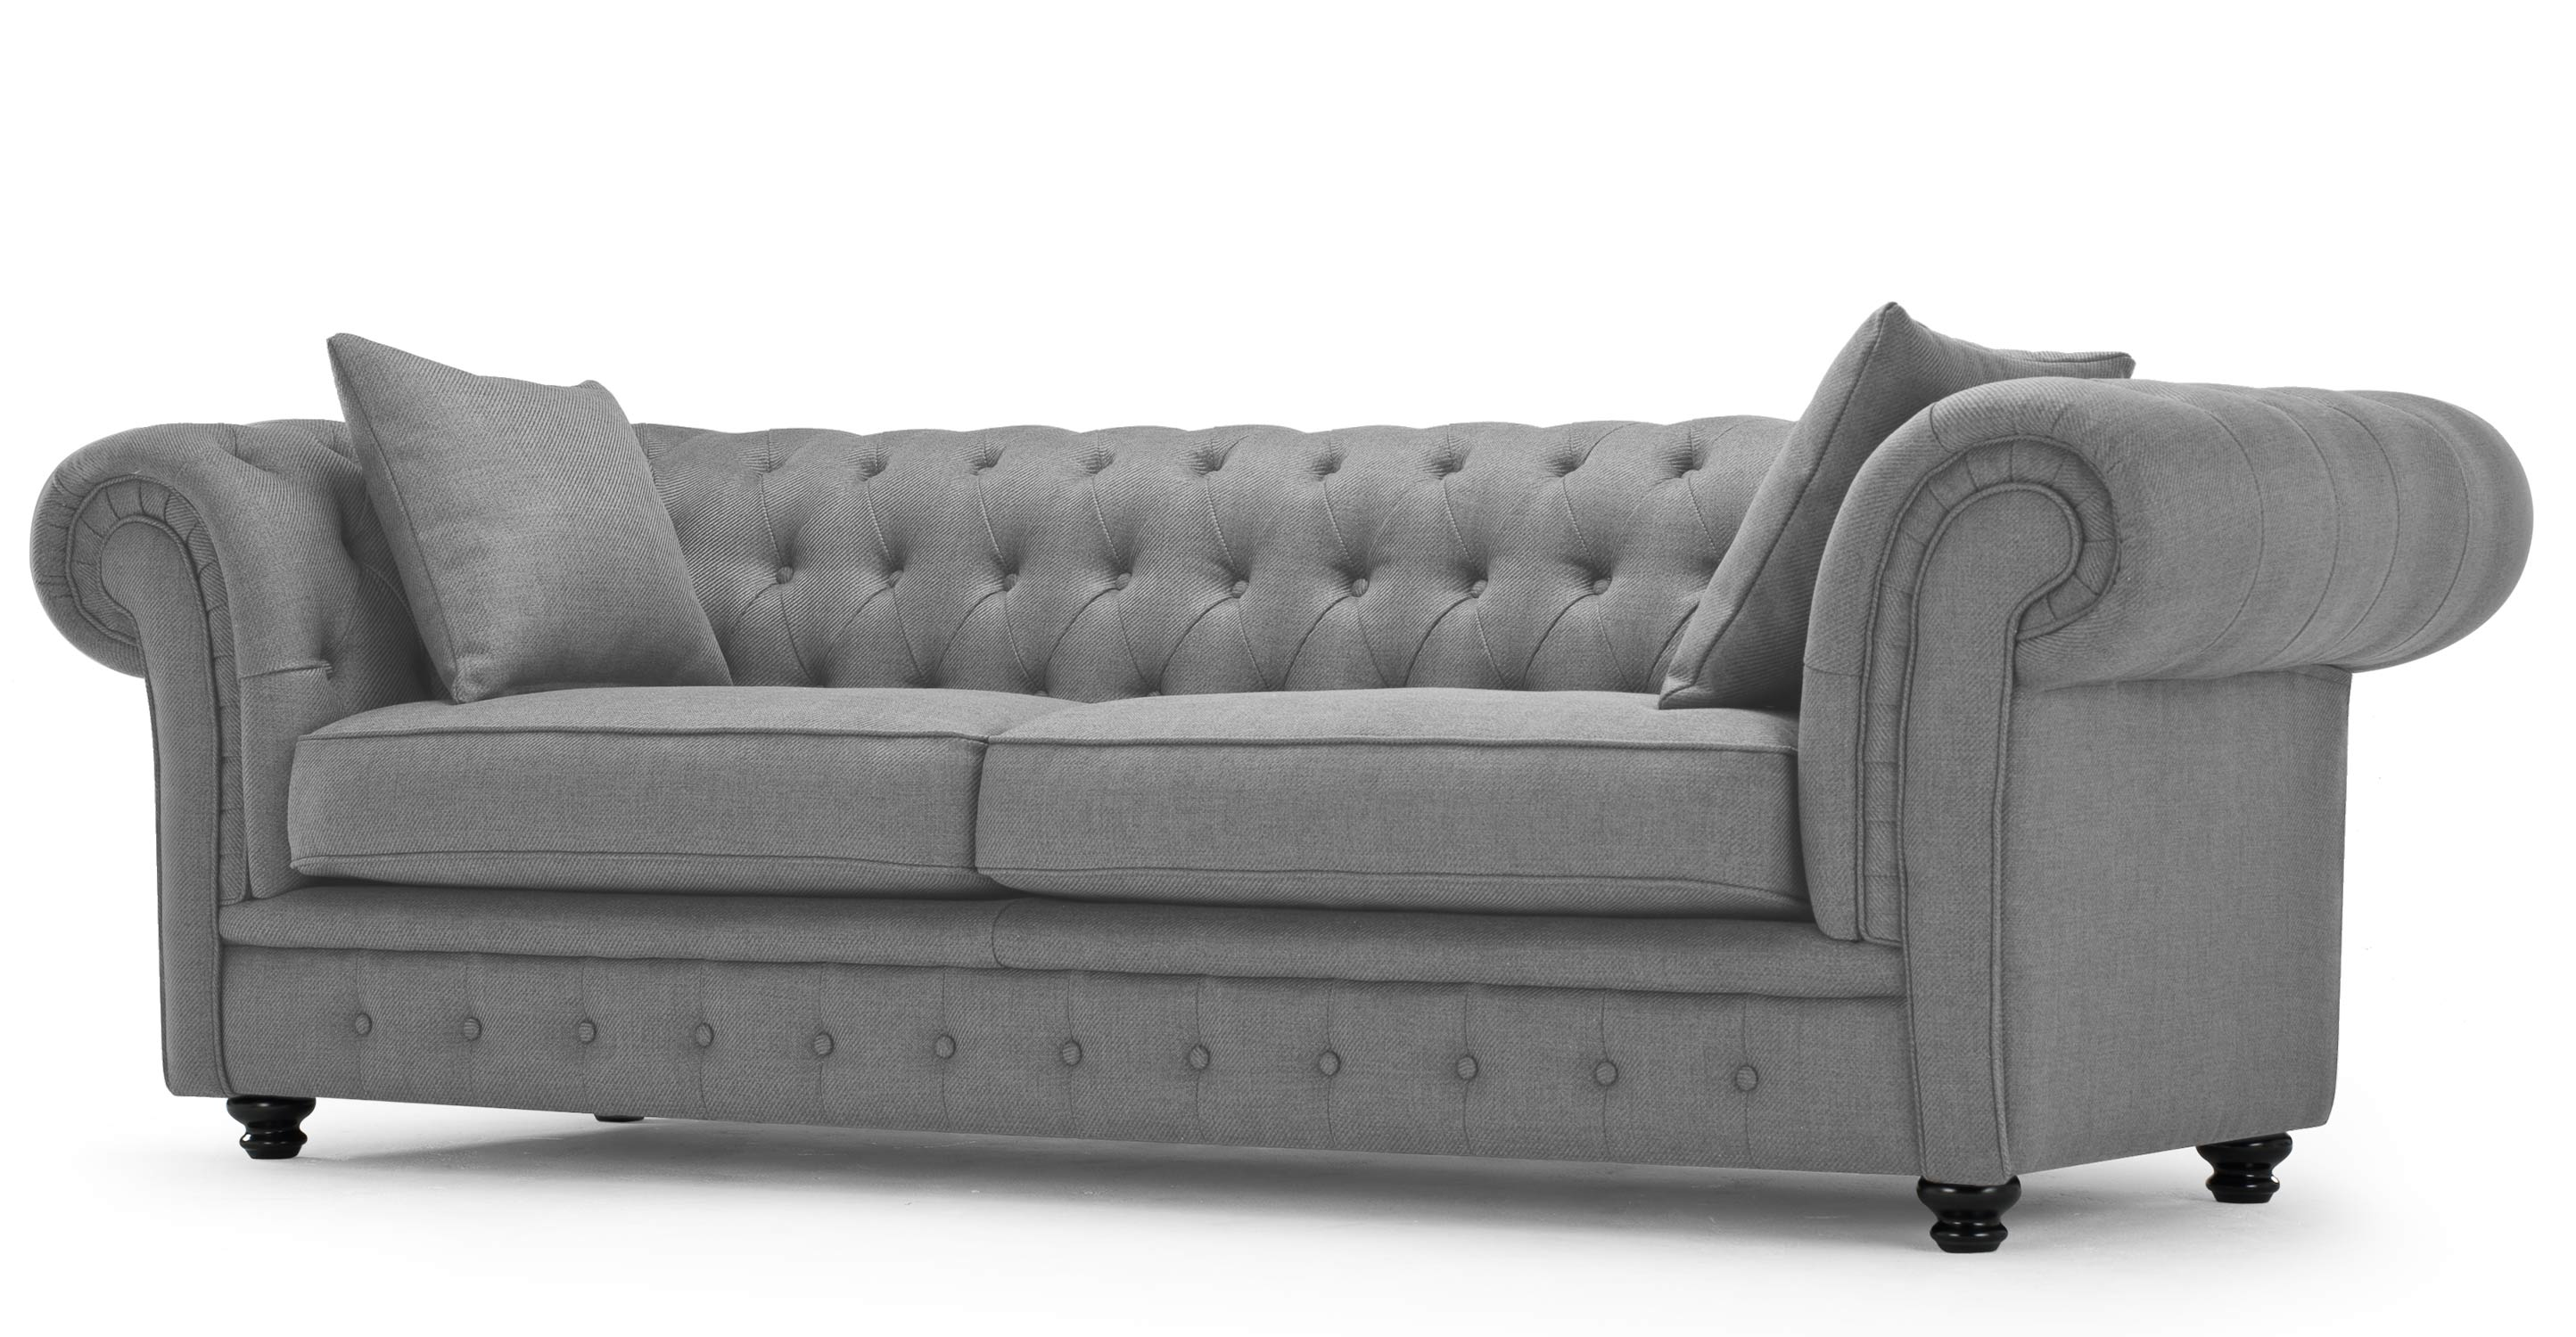 Branagh 3 Seater Grey Chesterfield Sofa